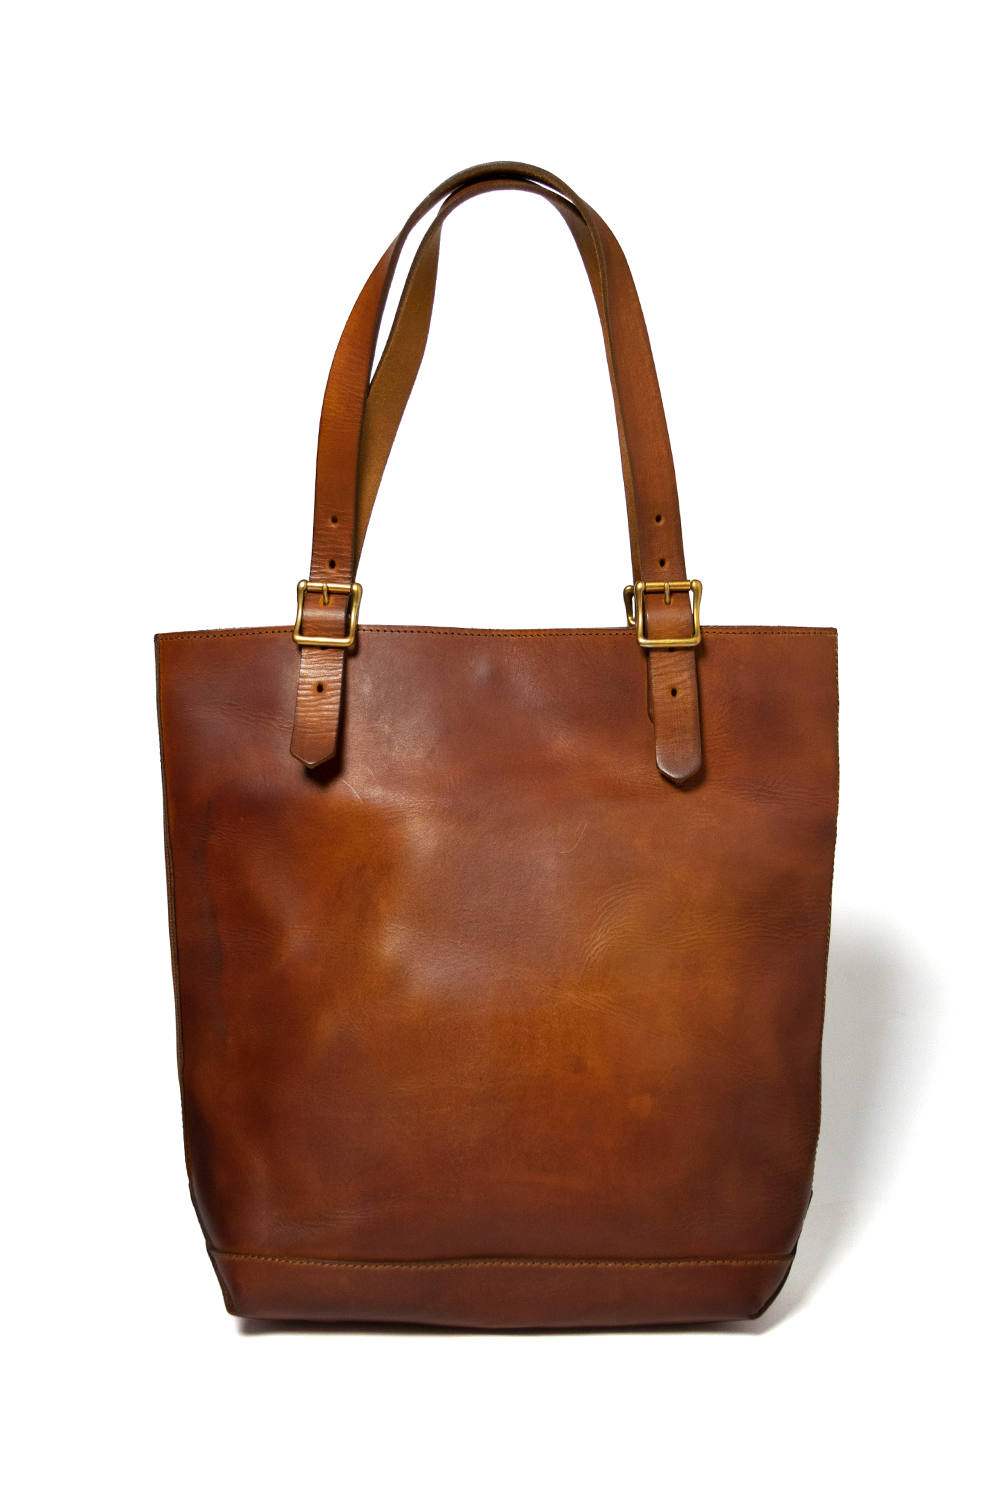 【18AW】レザートラベルトートバッグ - ハイト [マスタードキャメル] / LEATHER TRAVEL TOTE BAG - HEIGHT [MUSTARD CAMEL]